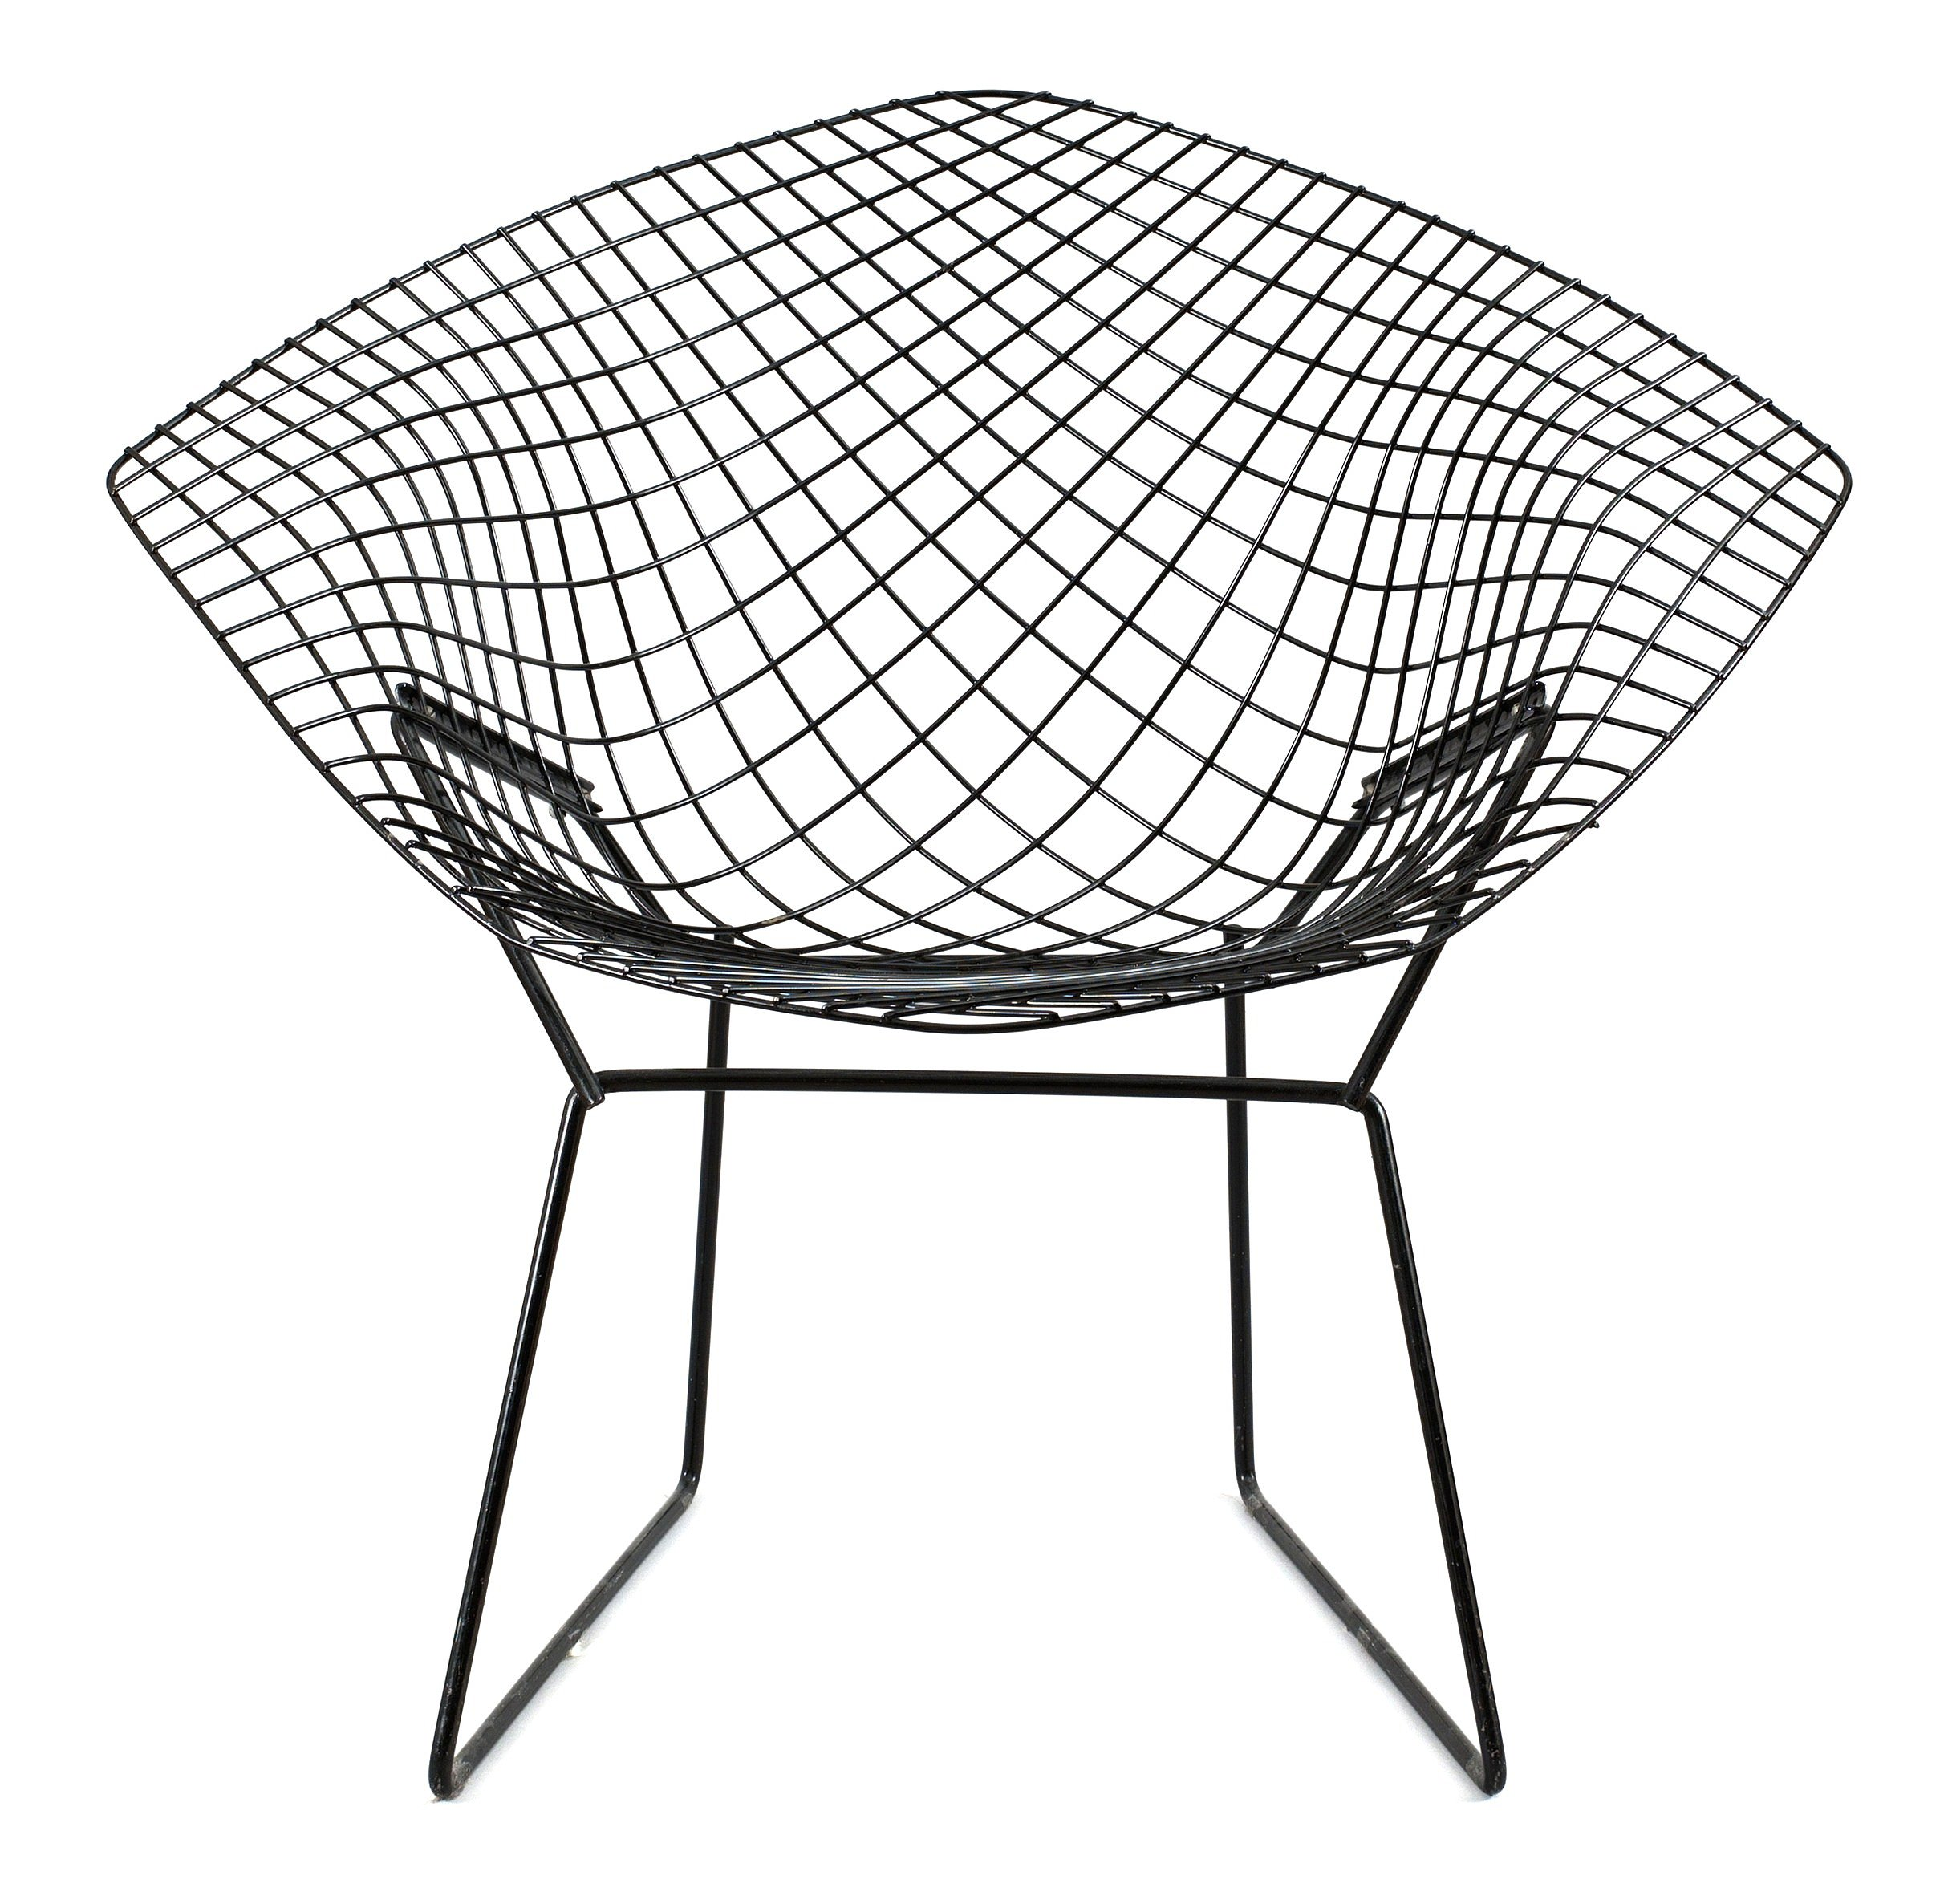 a harry bertoia black metal diamond chair bukowskis. Black Bedroom Furniture Sets. Home Design Ideas